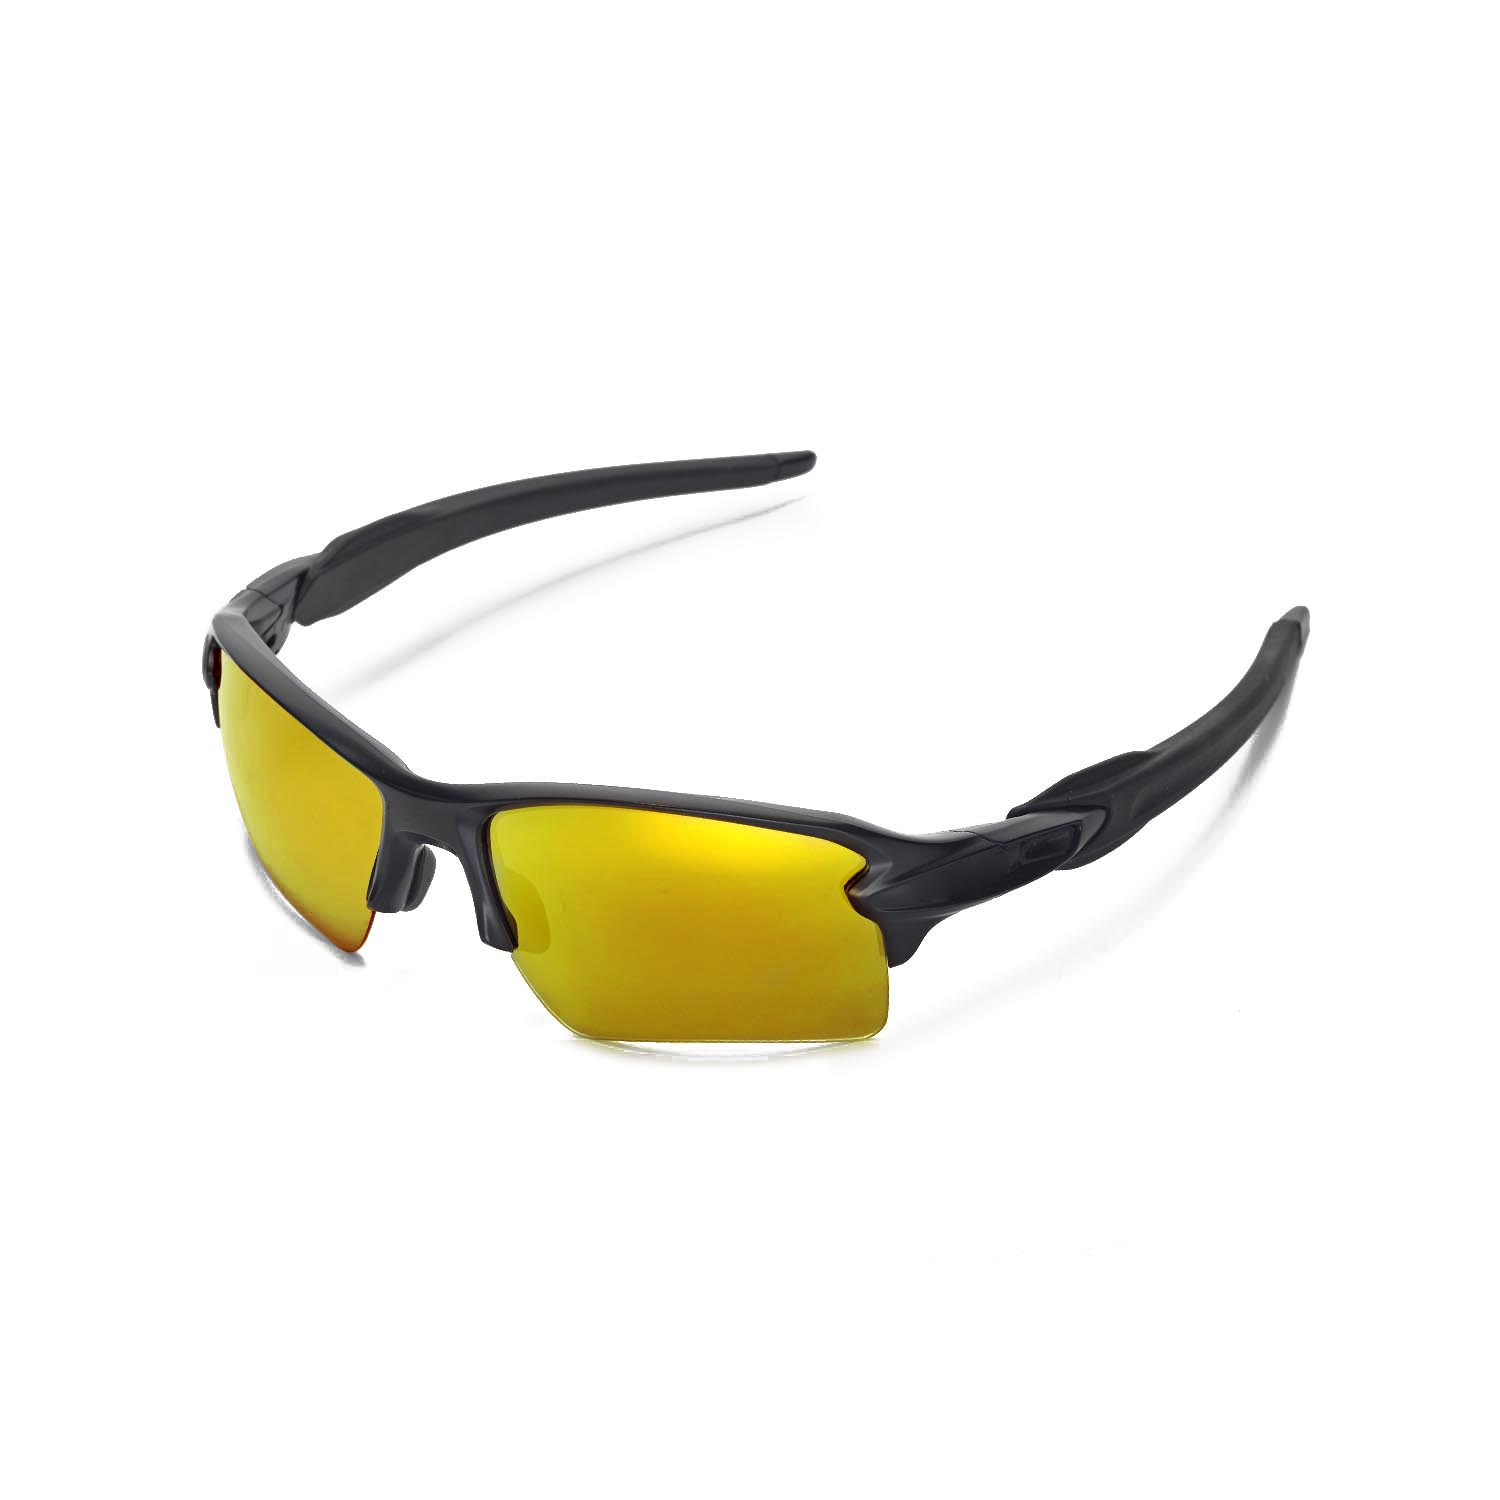 4607f9f78af Details about Walleva Polarized 24K Gold Replacement Lenses For Oakley Flak  2.0 XL Sunglasses